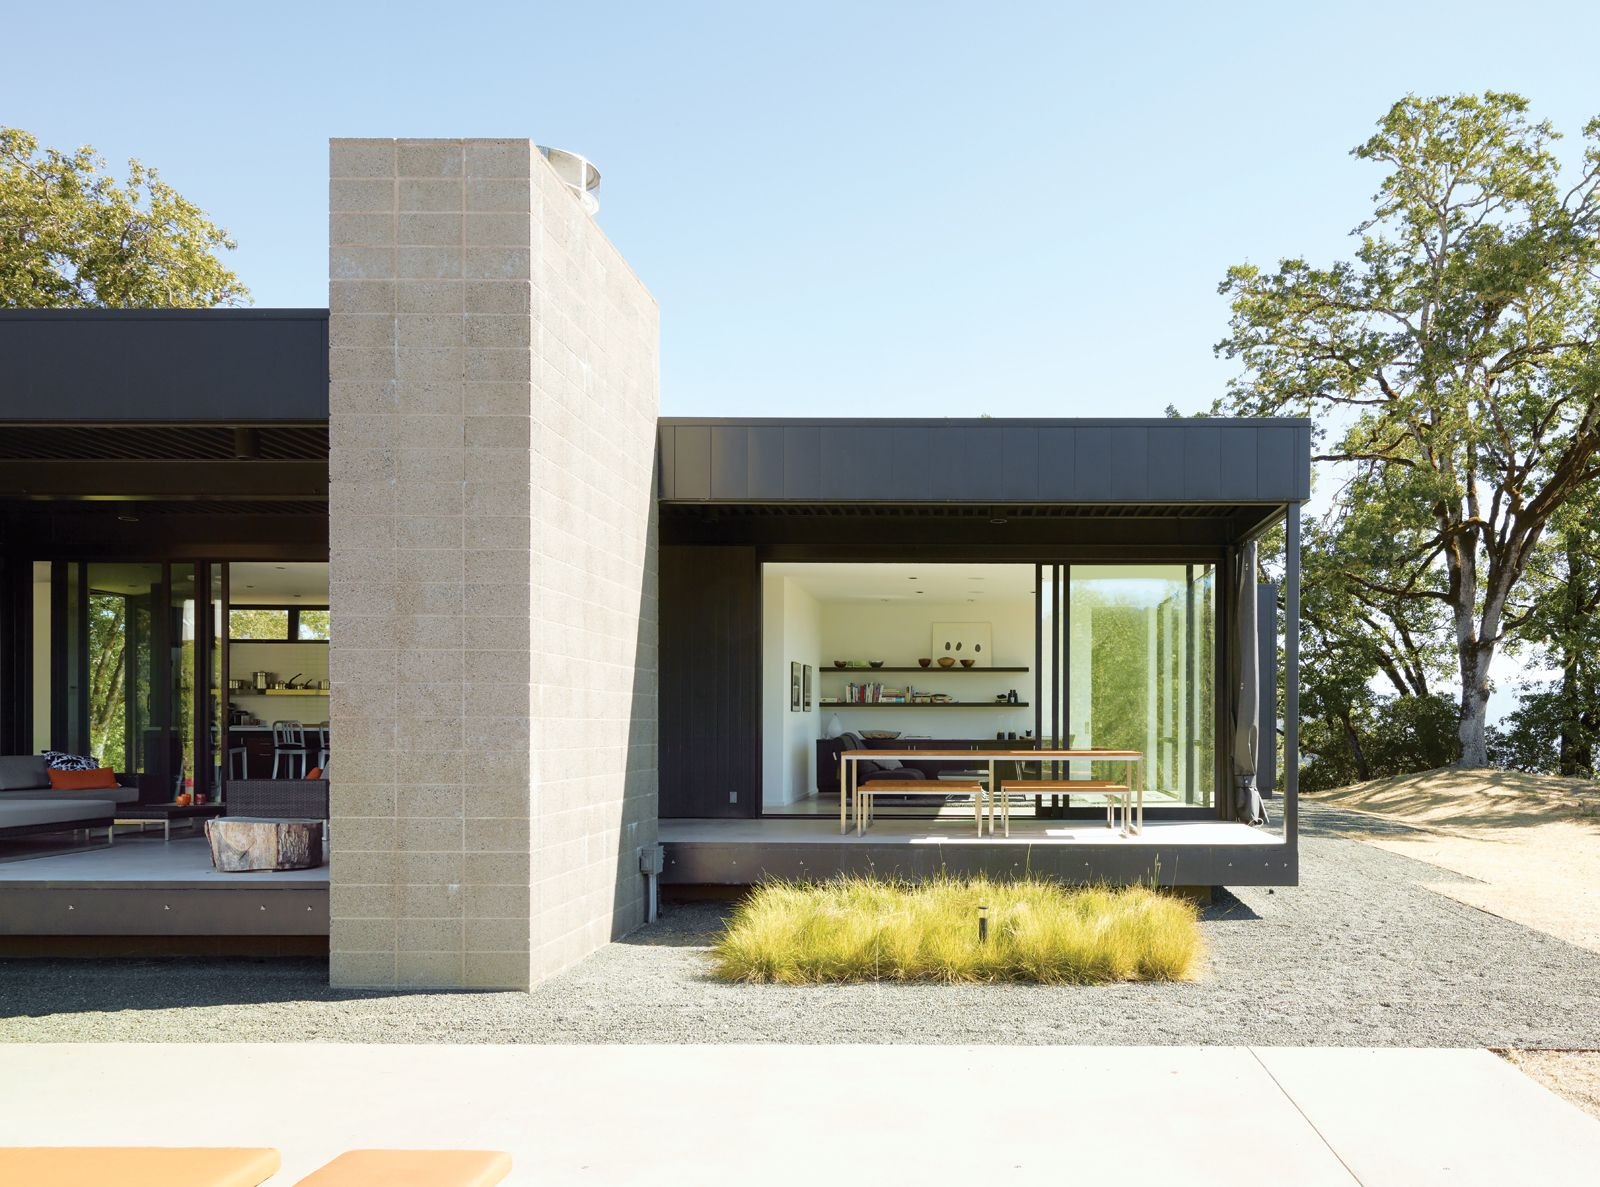 images about Architecture on Pinterest   Architects       images about Architecture on Pinterest   Architects  Coachella Valley and Prefab Houses